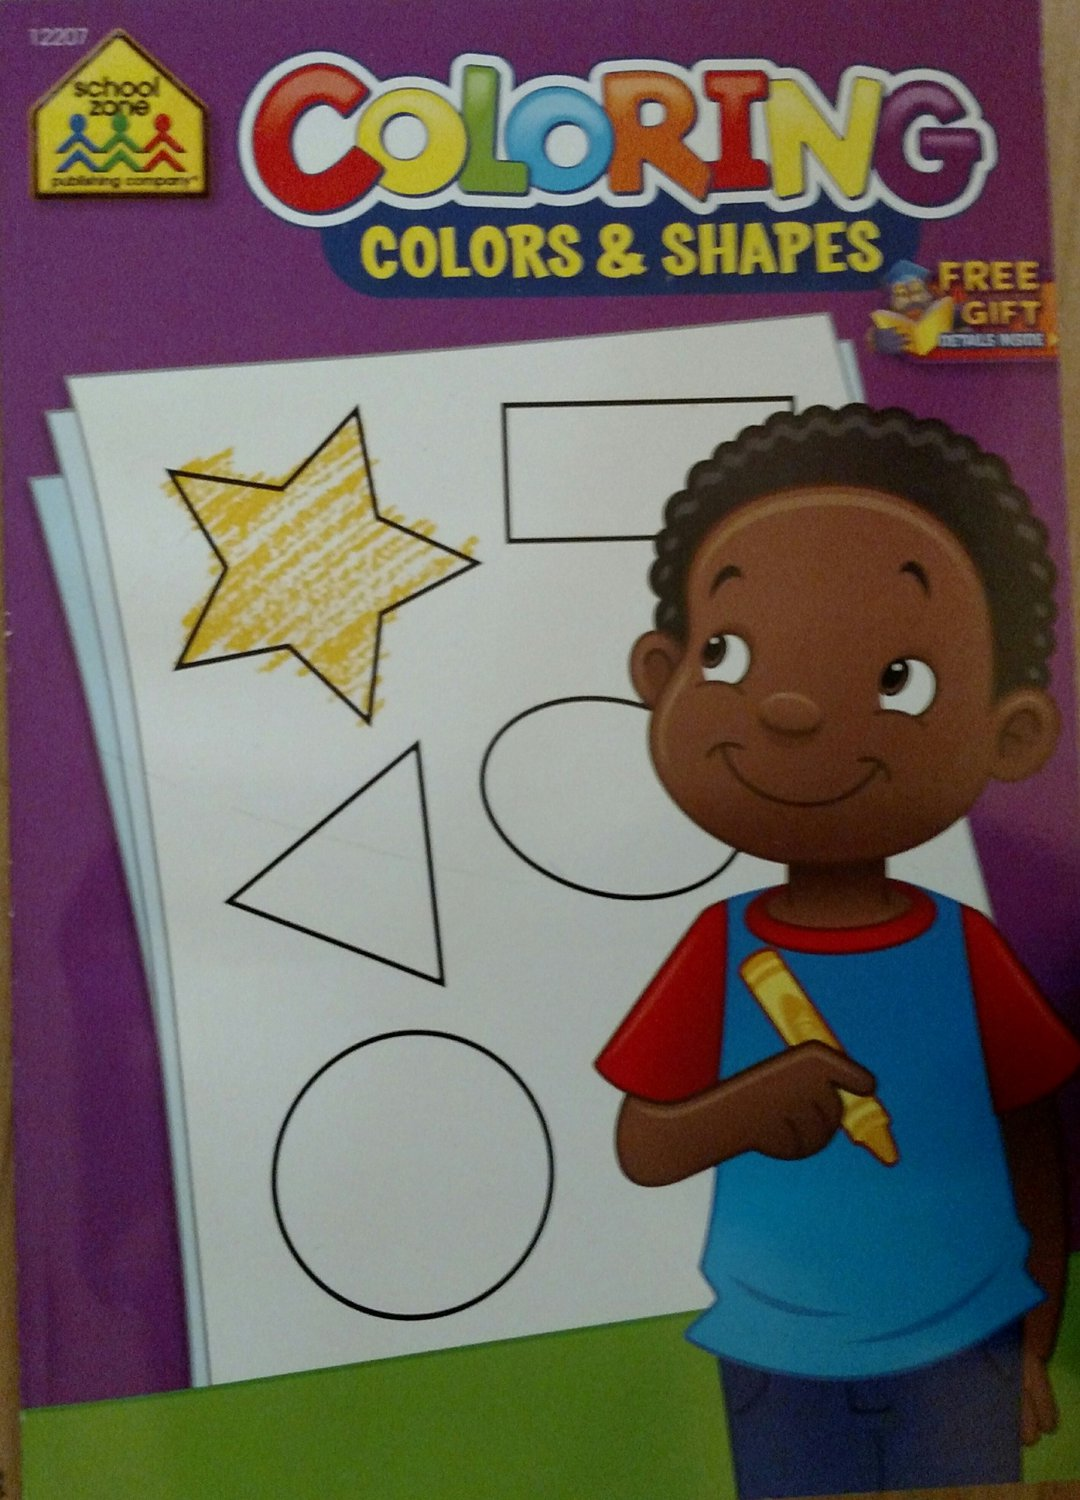 School Zone Coloring Colors & Shapes